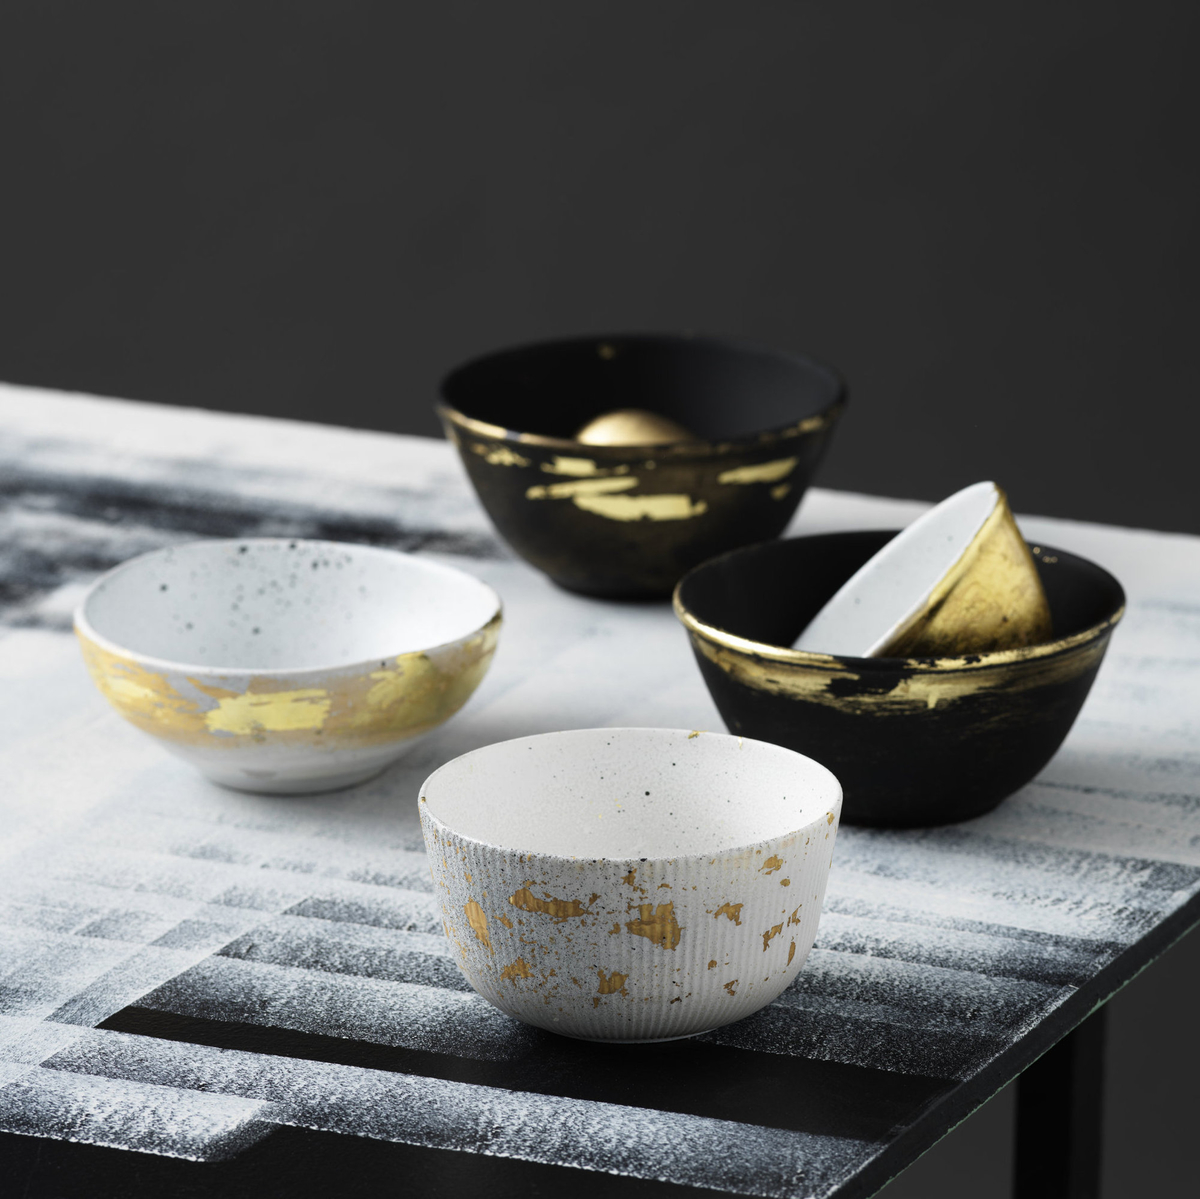 Gold-lined bowls